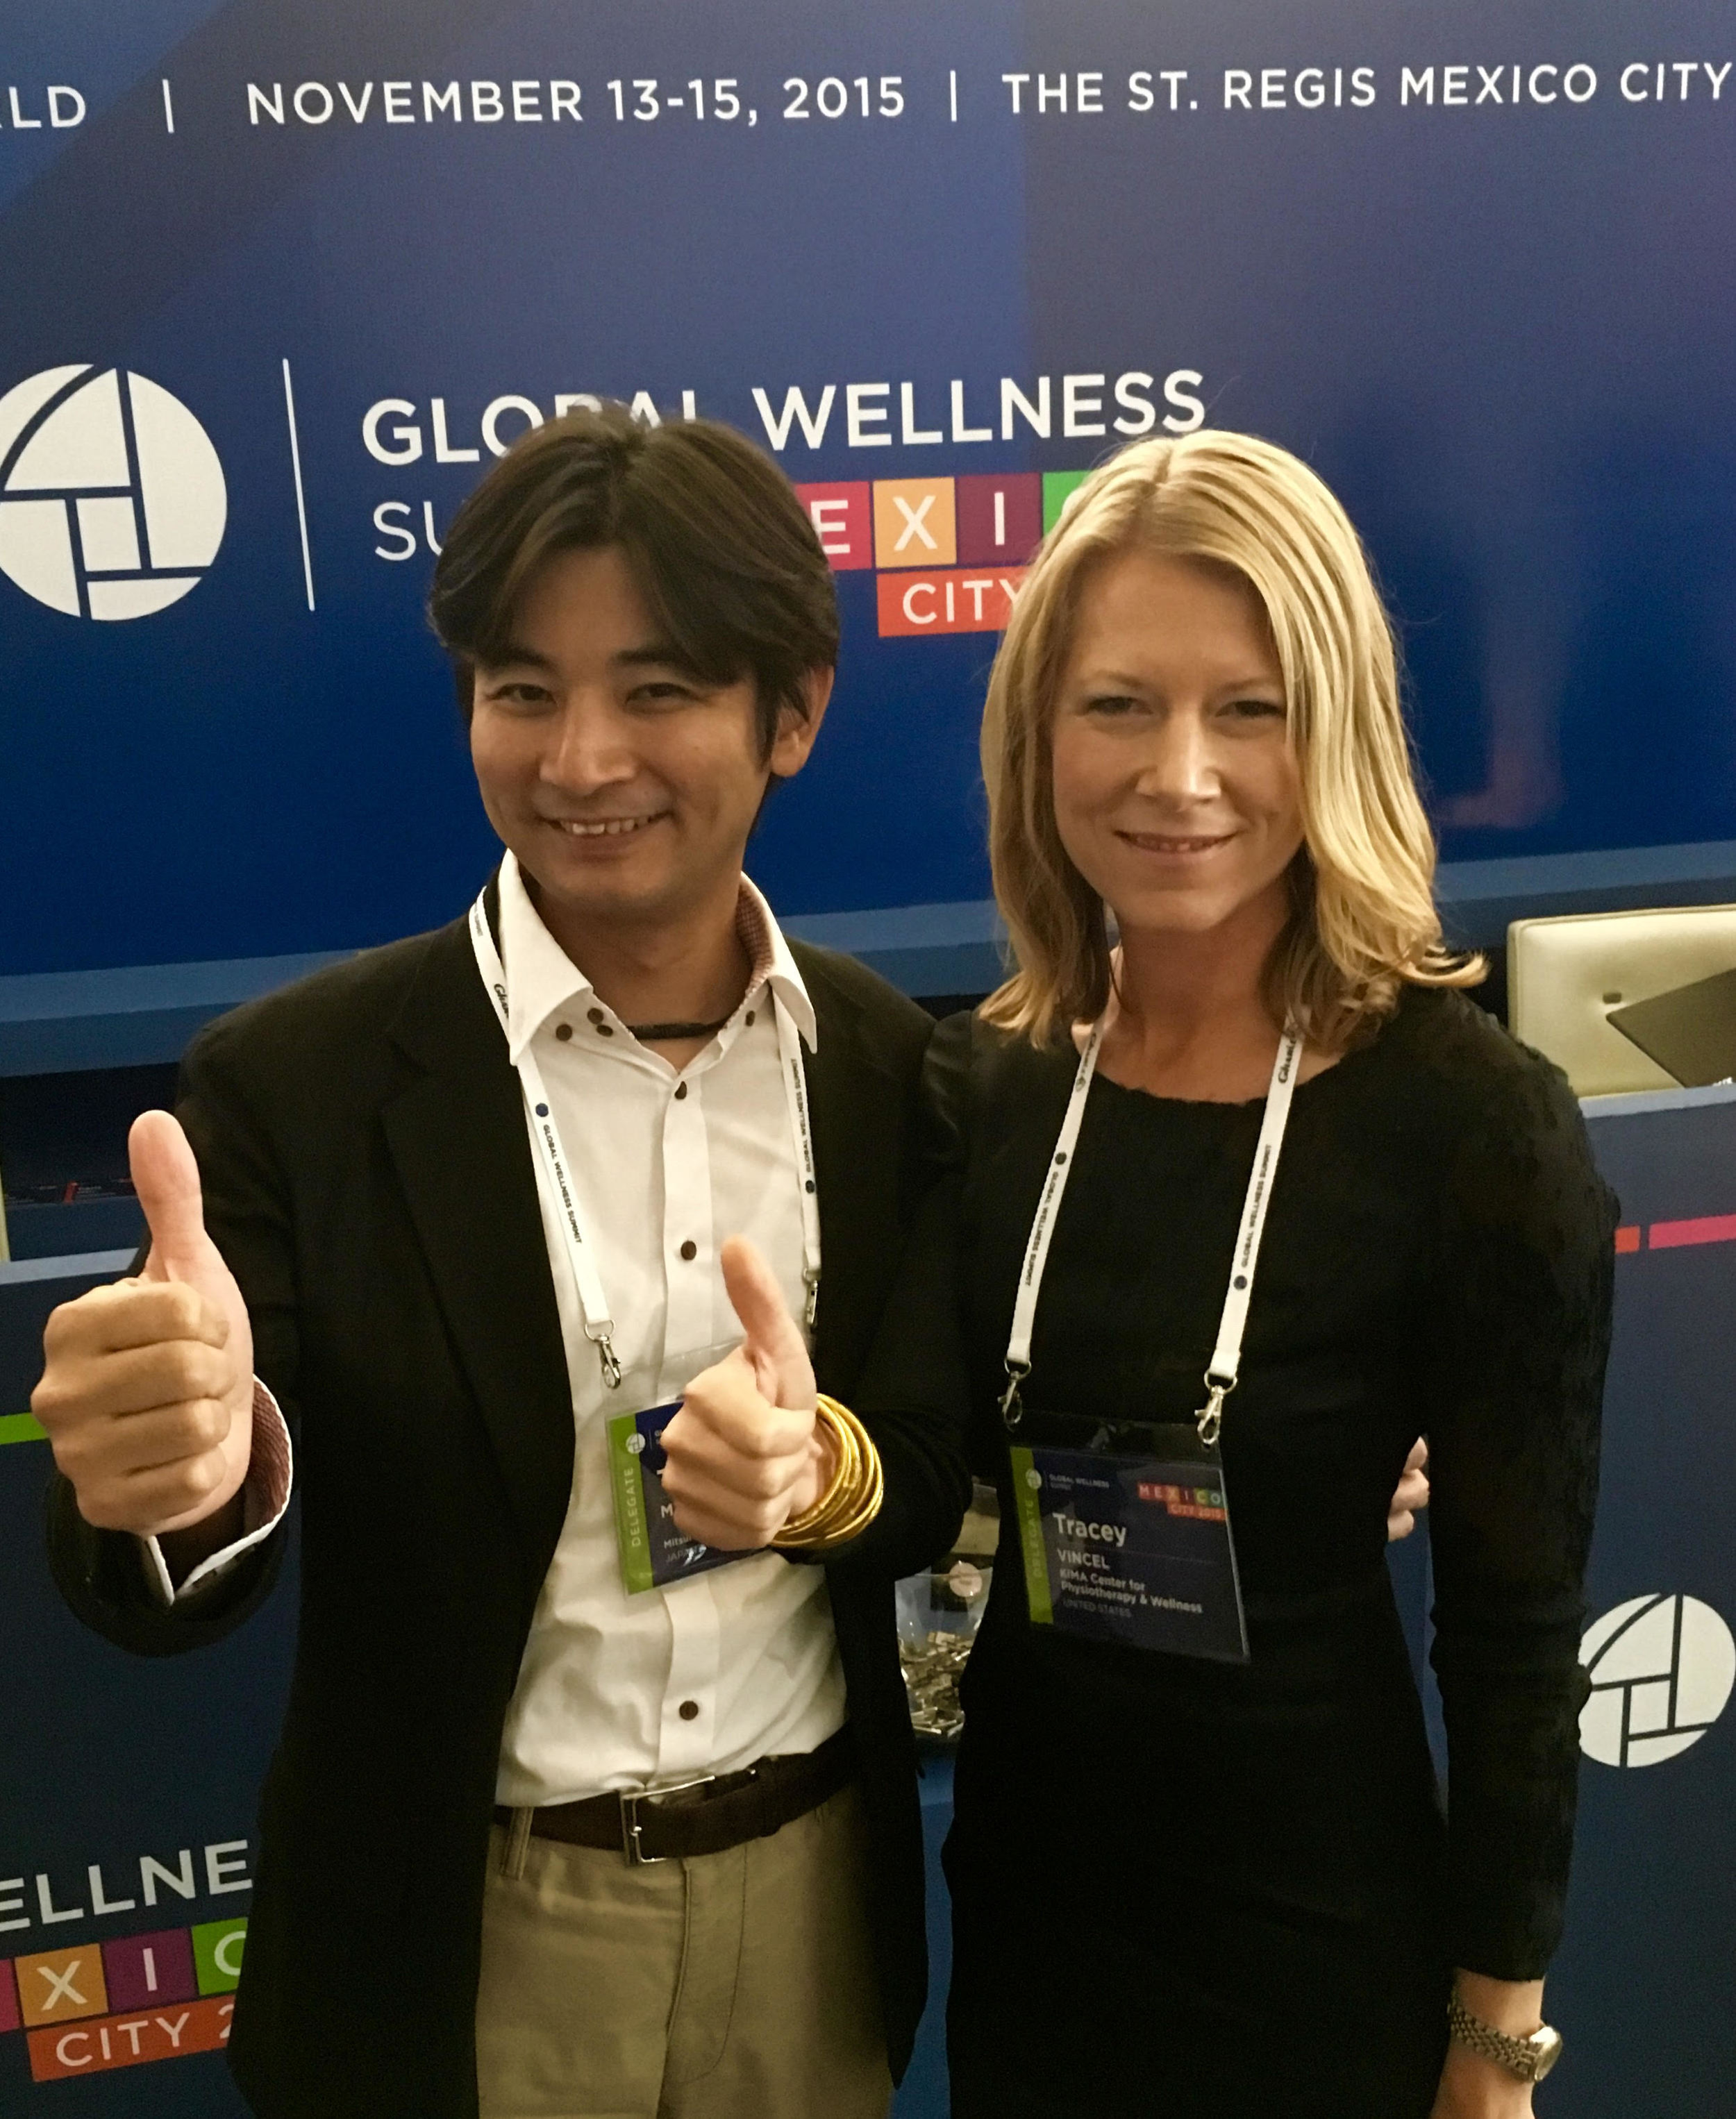 At the Global Wellness Summit in Mexico City